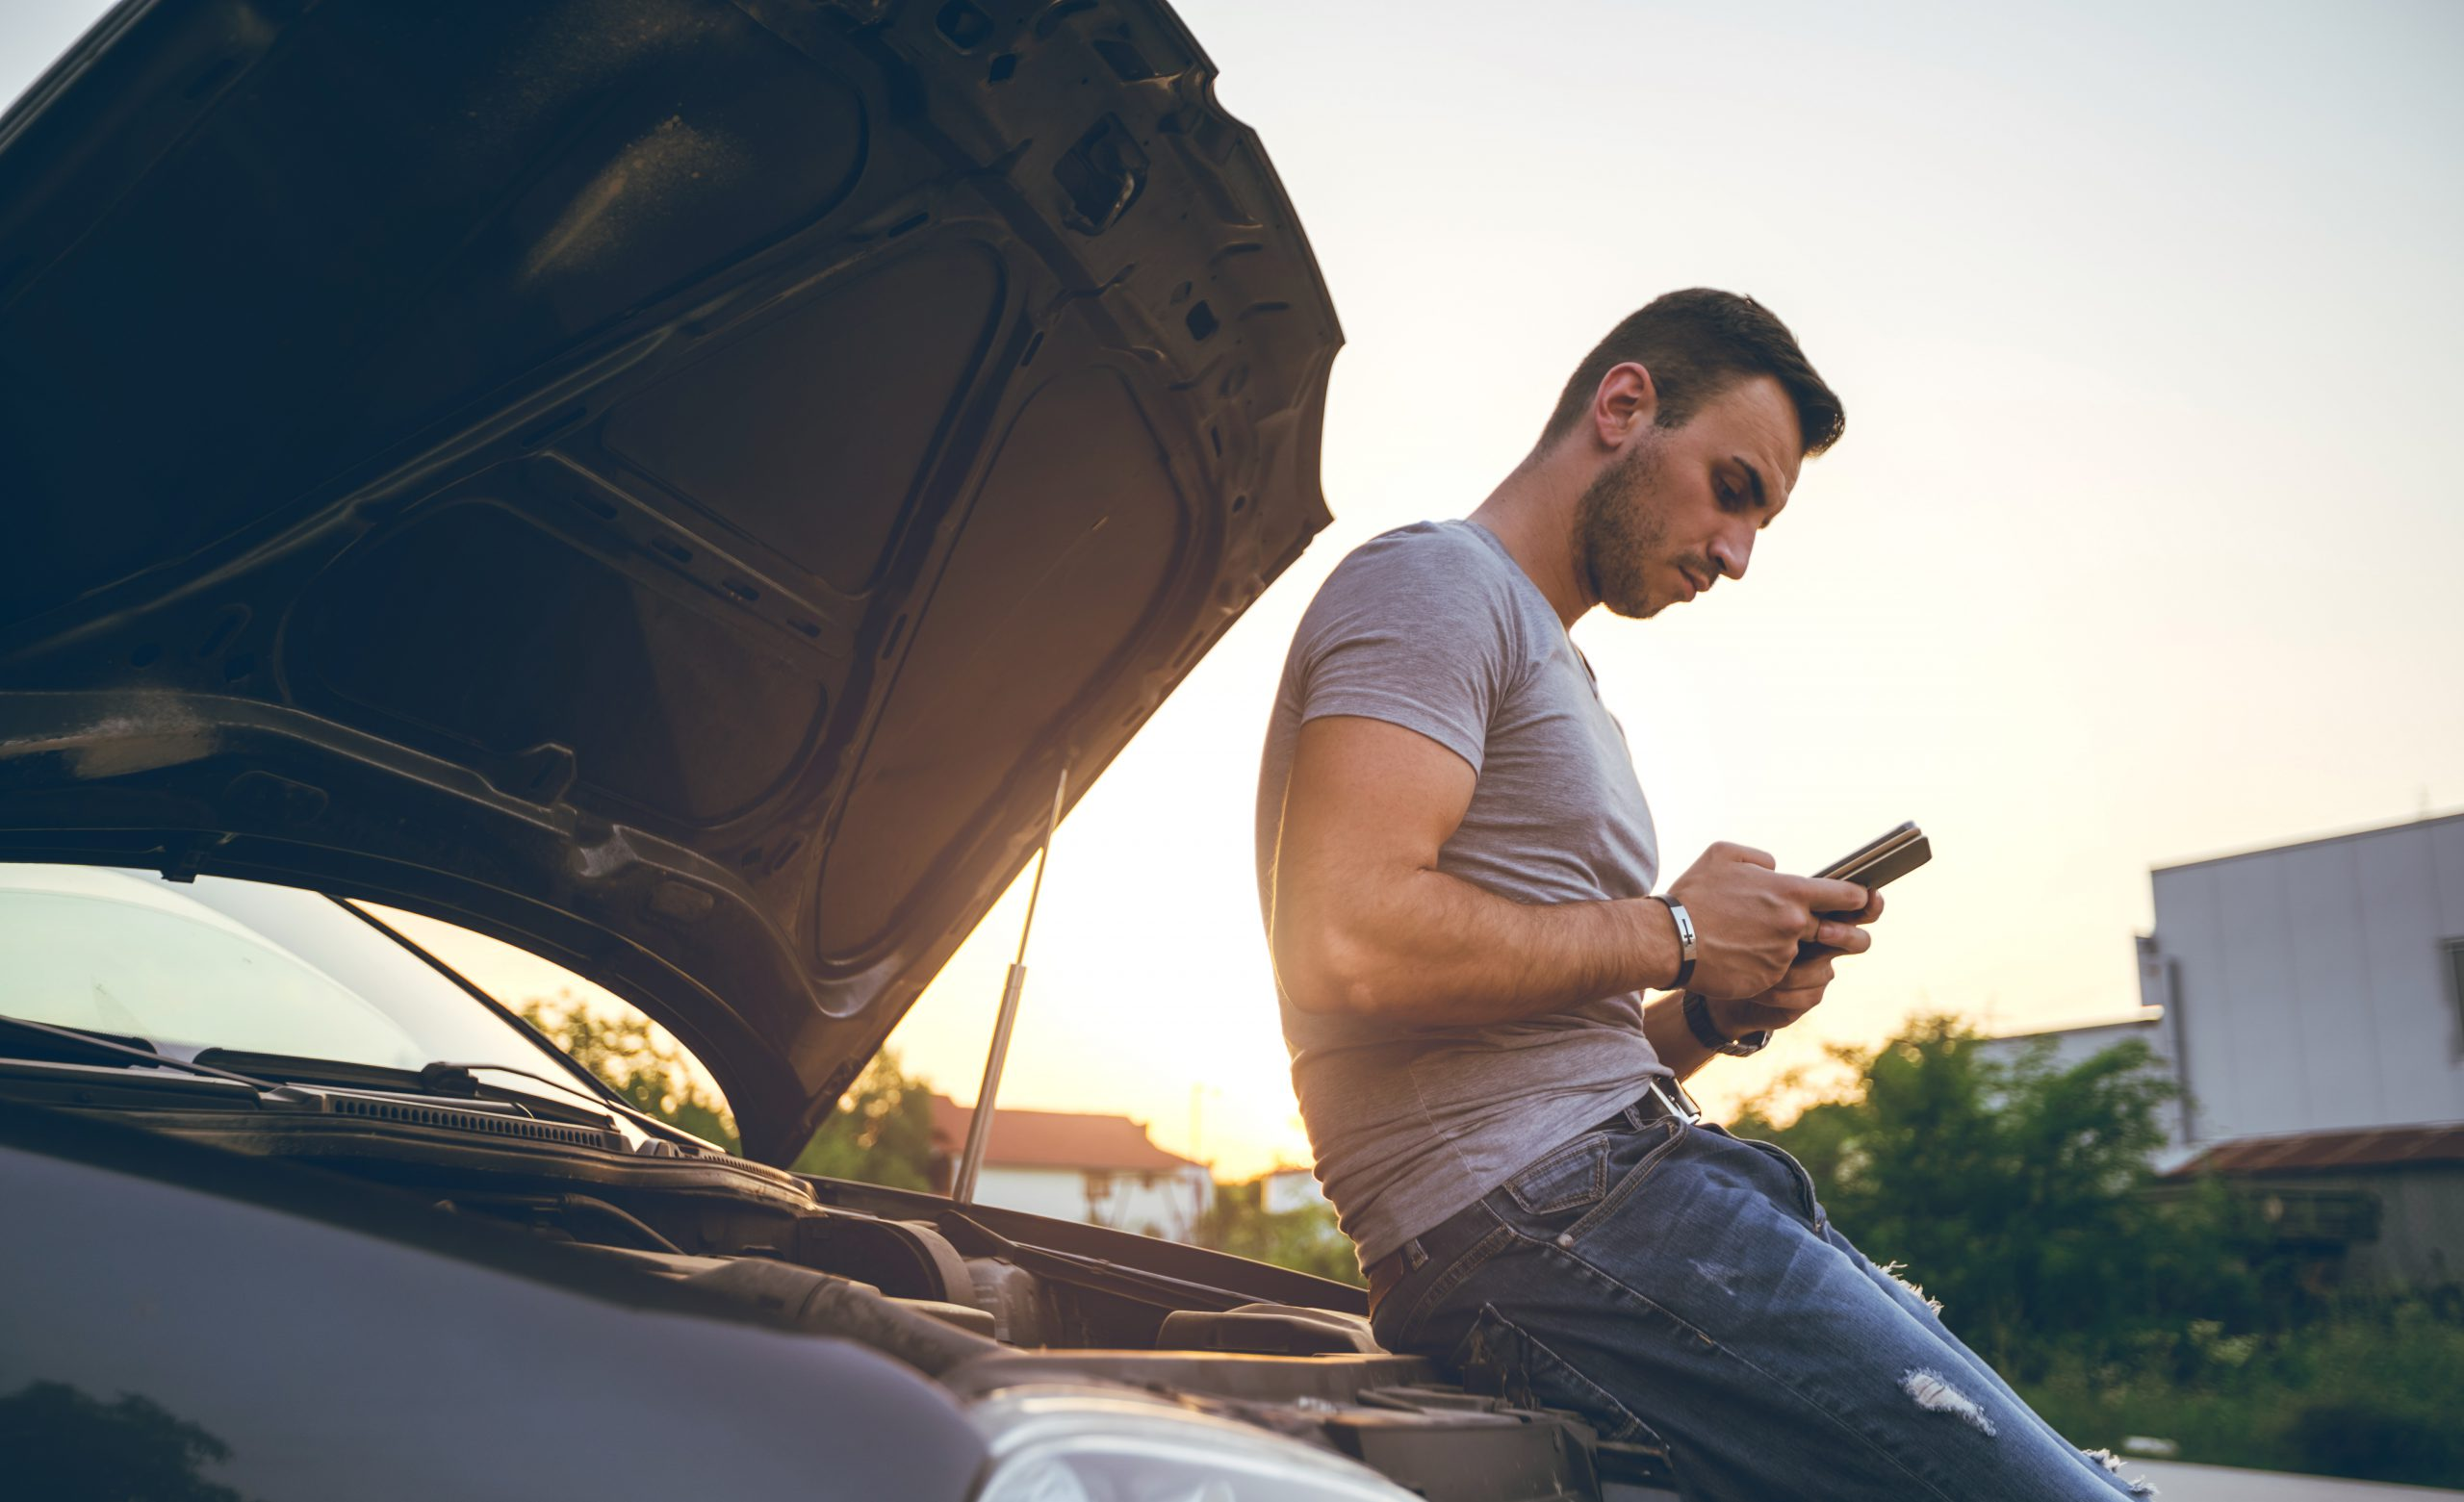 FLOWER checks: 6 vital car checks to keep your car in great condition